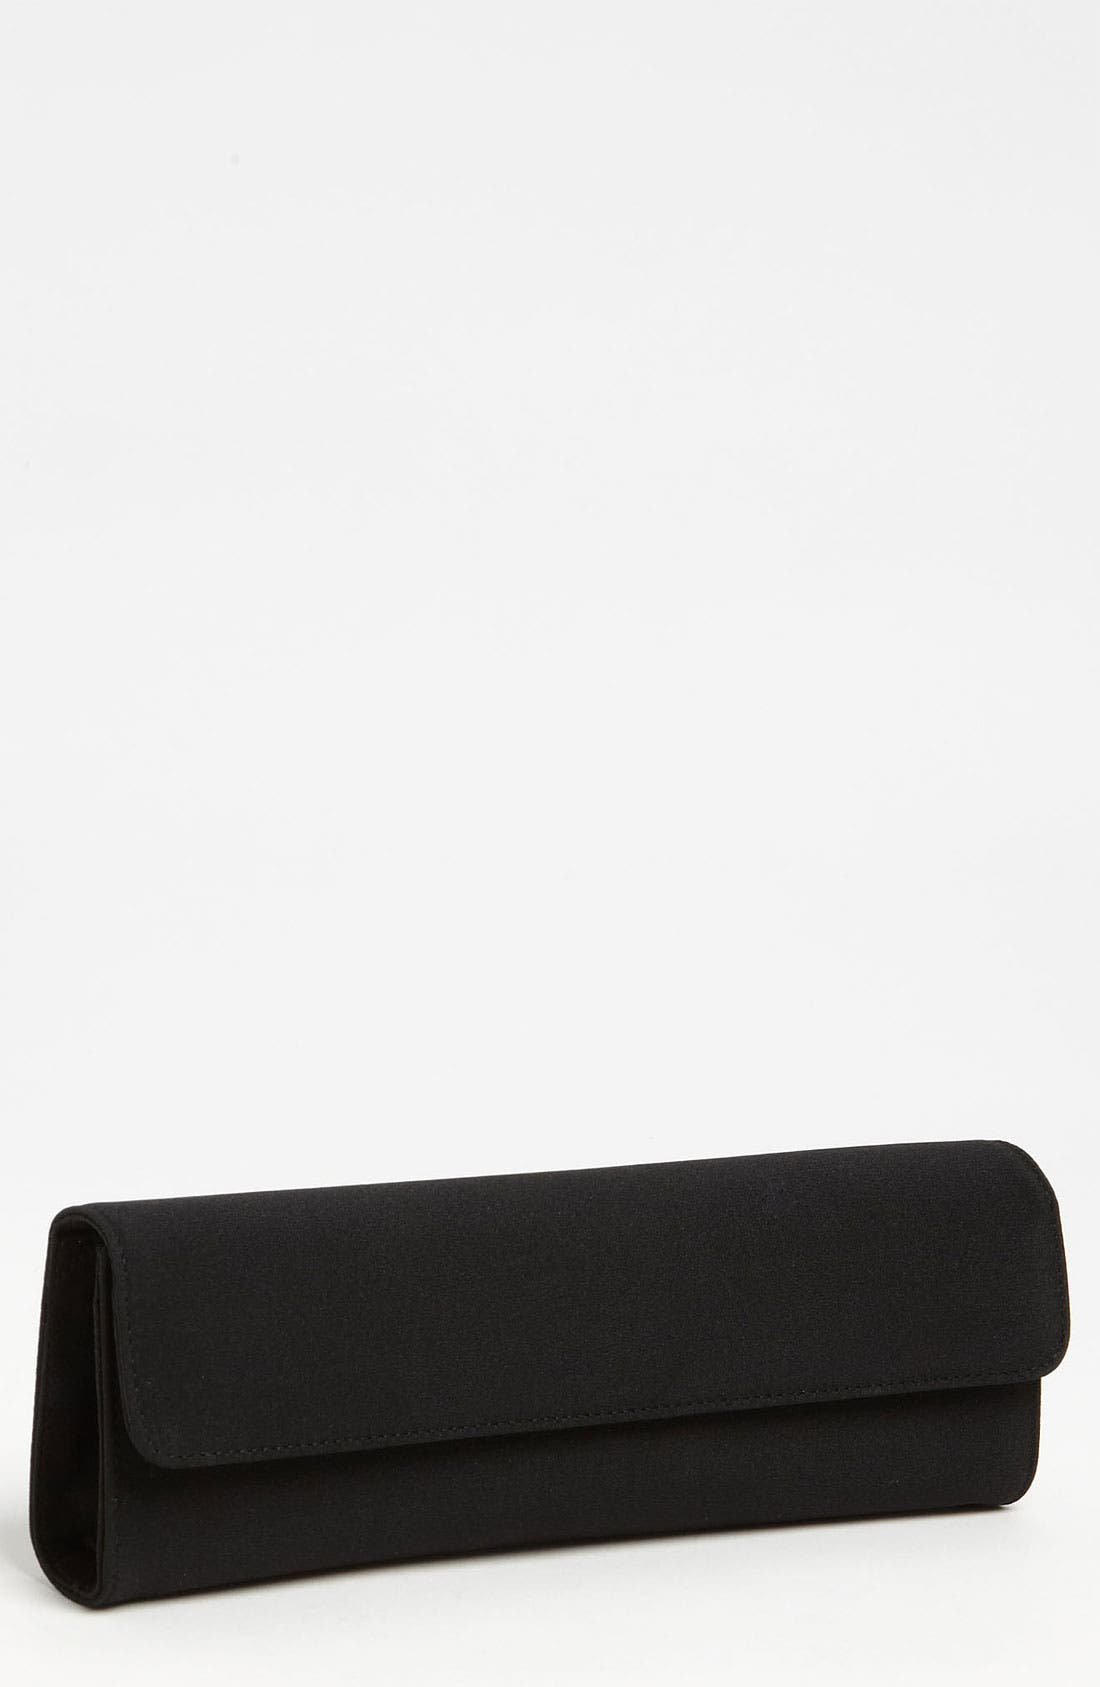 Alternate Image 1 Selected - Stuart Weitzman 'Tahoe' Clutch